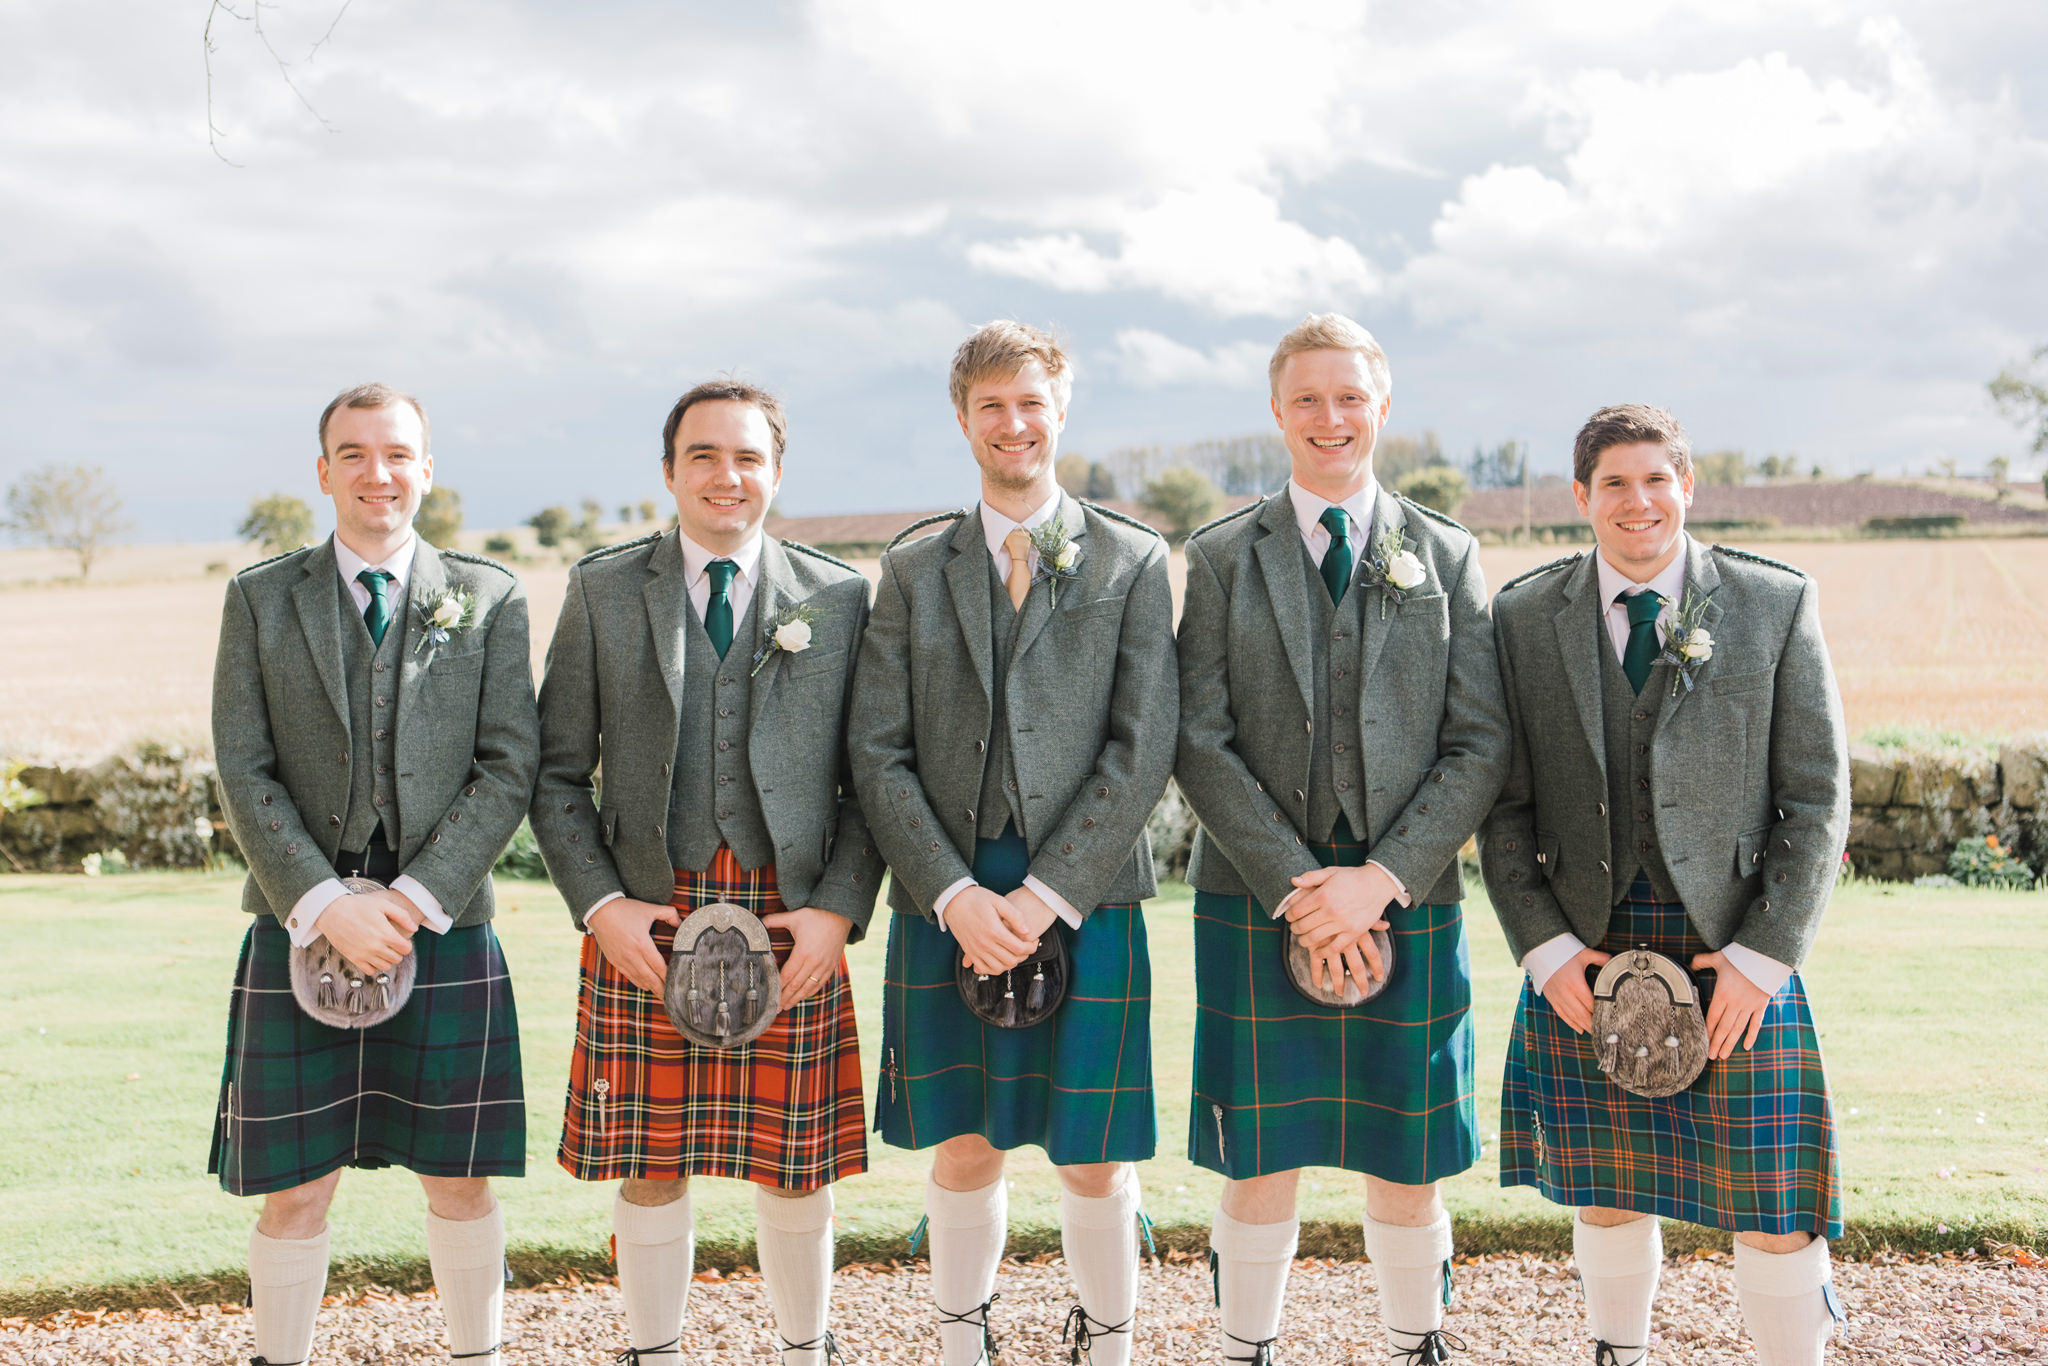 070-scotland-wedding-photographer.jpg